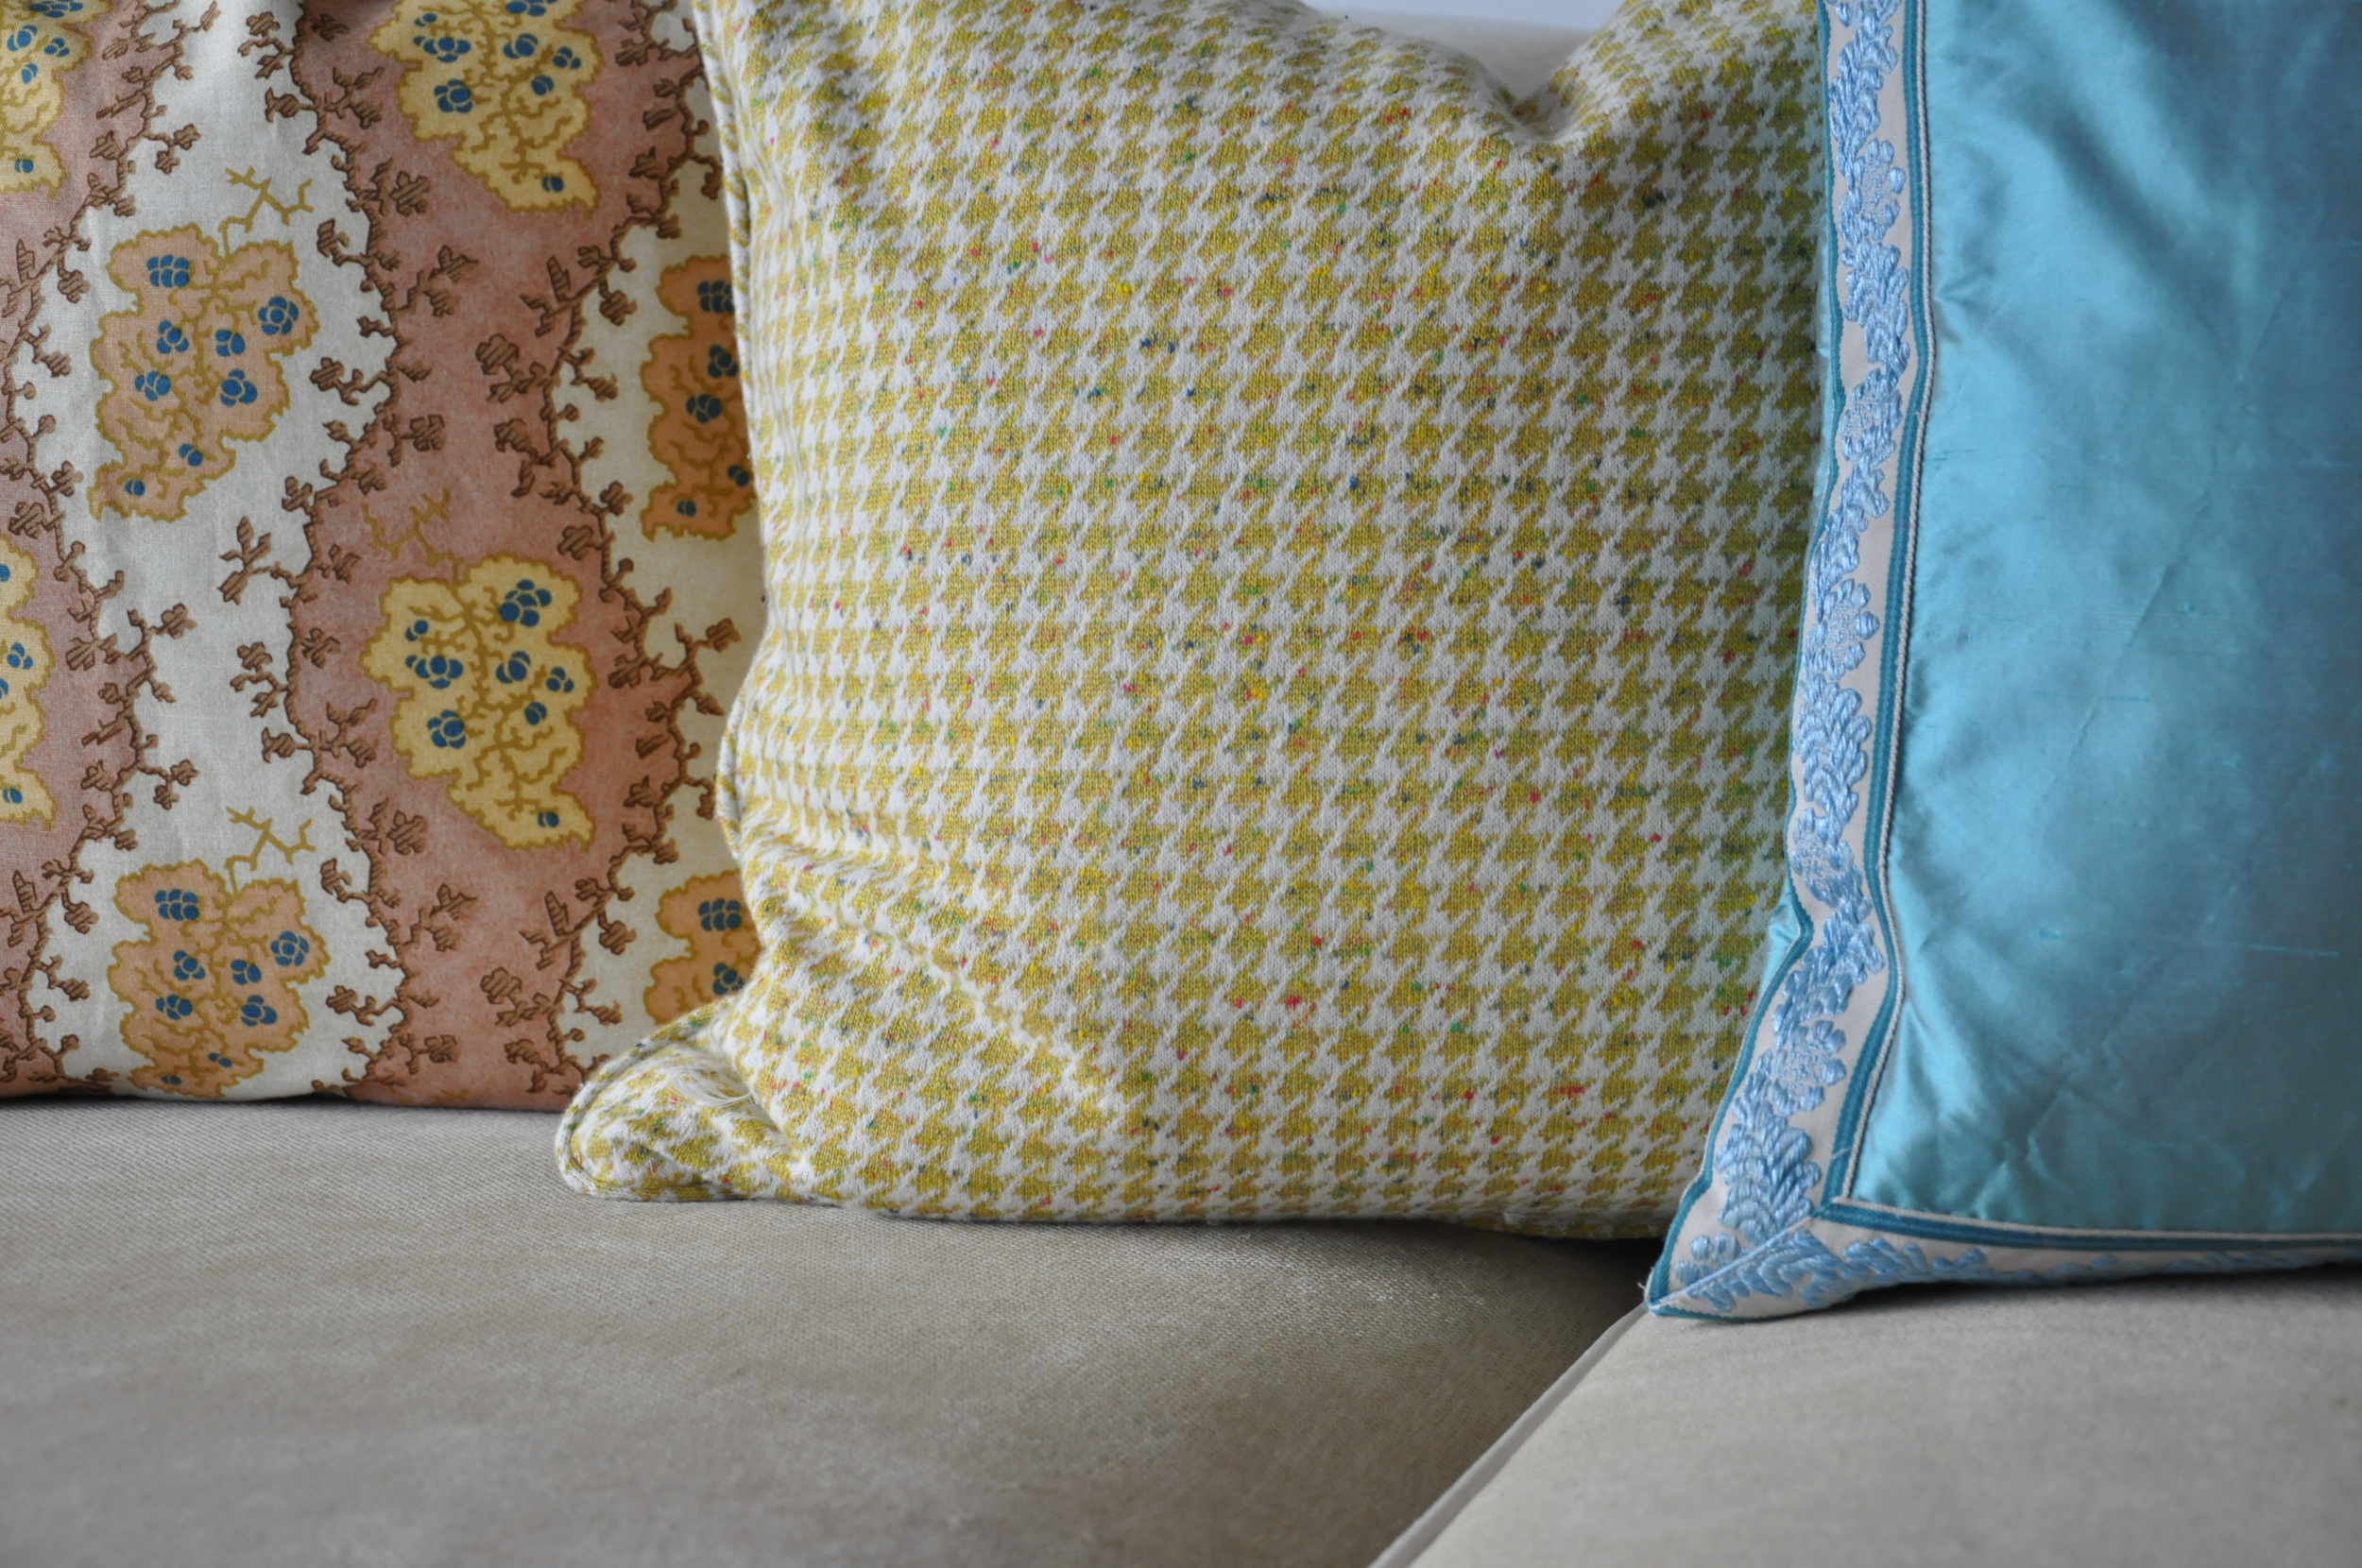 I love the bright color combination of a very English fabric, a yellow cashmere wool houndstooth, and a vibrant turquoise silk pillow. Sure to brighten in room!